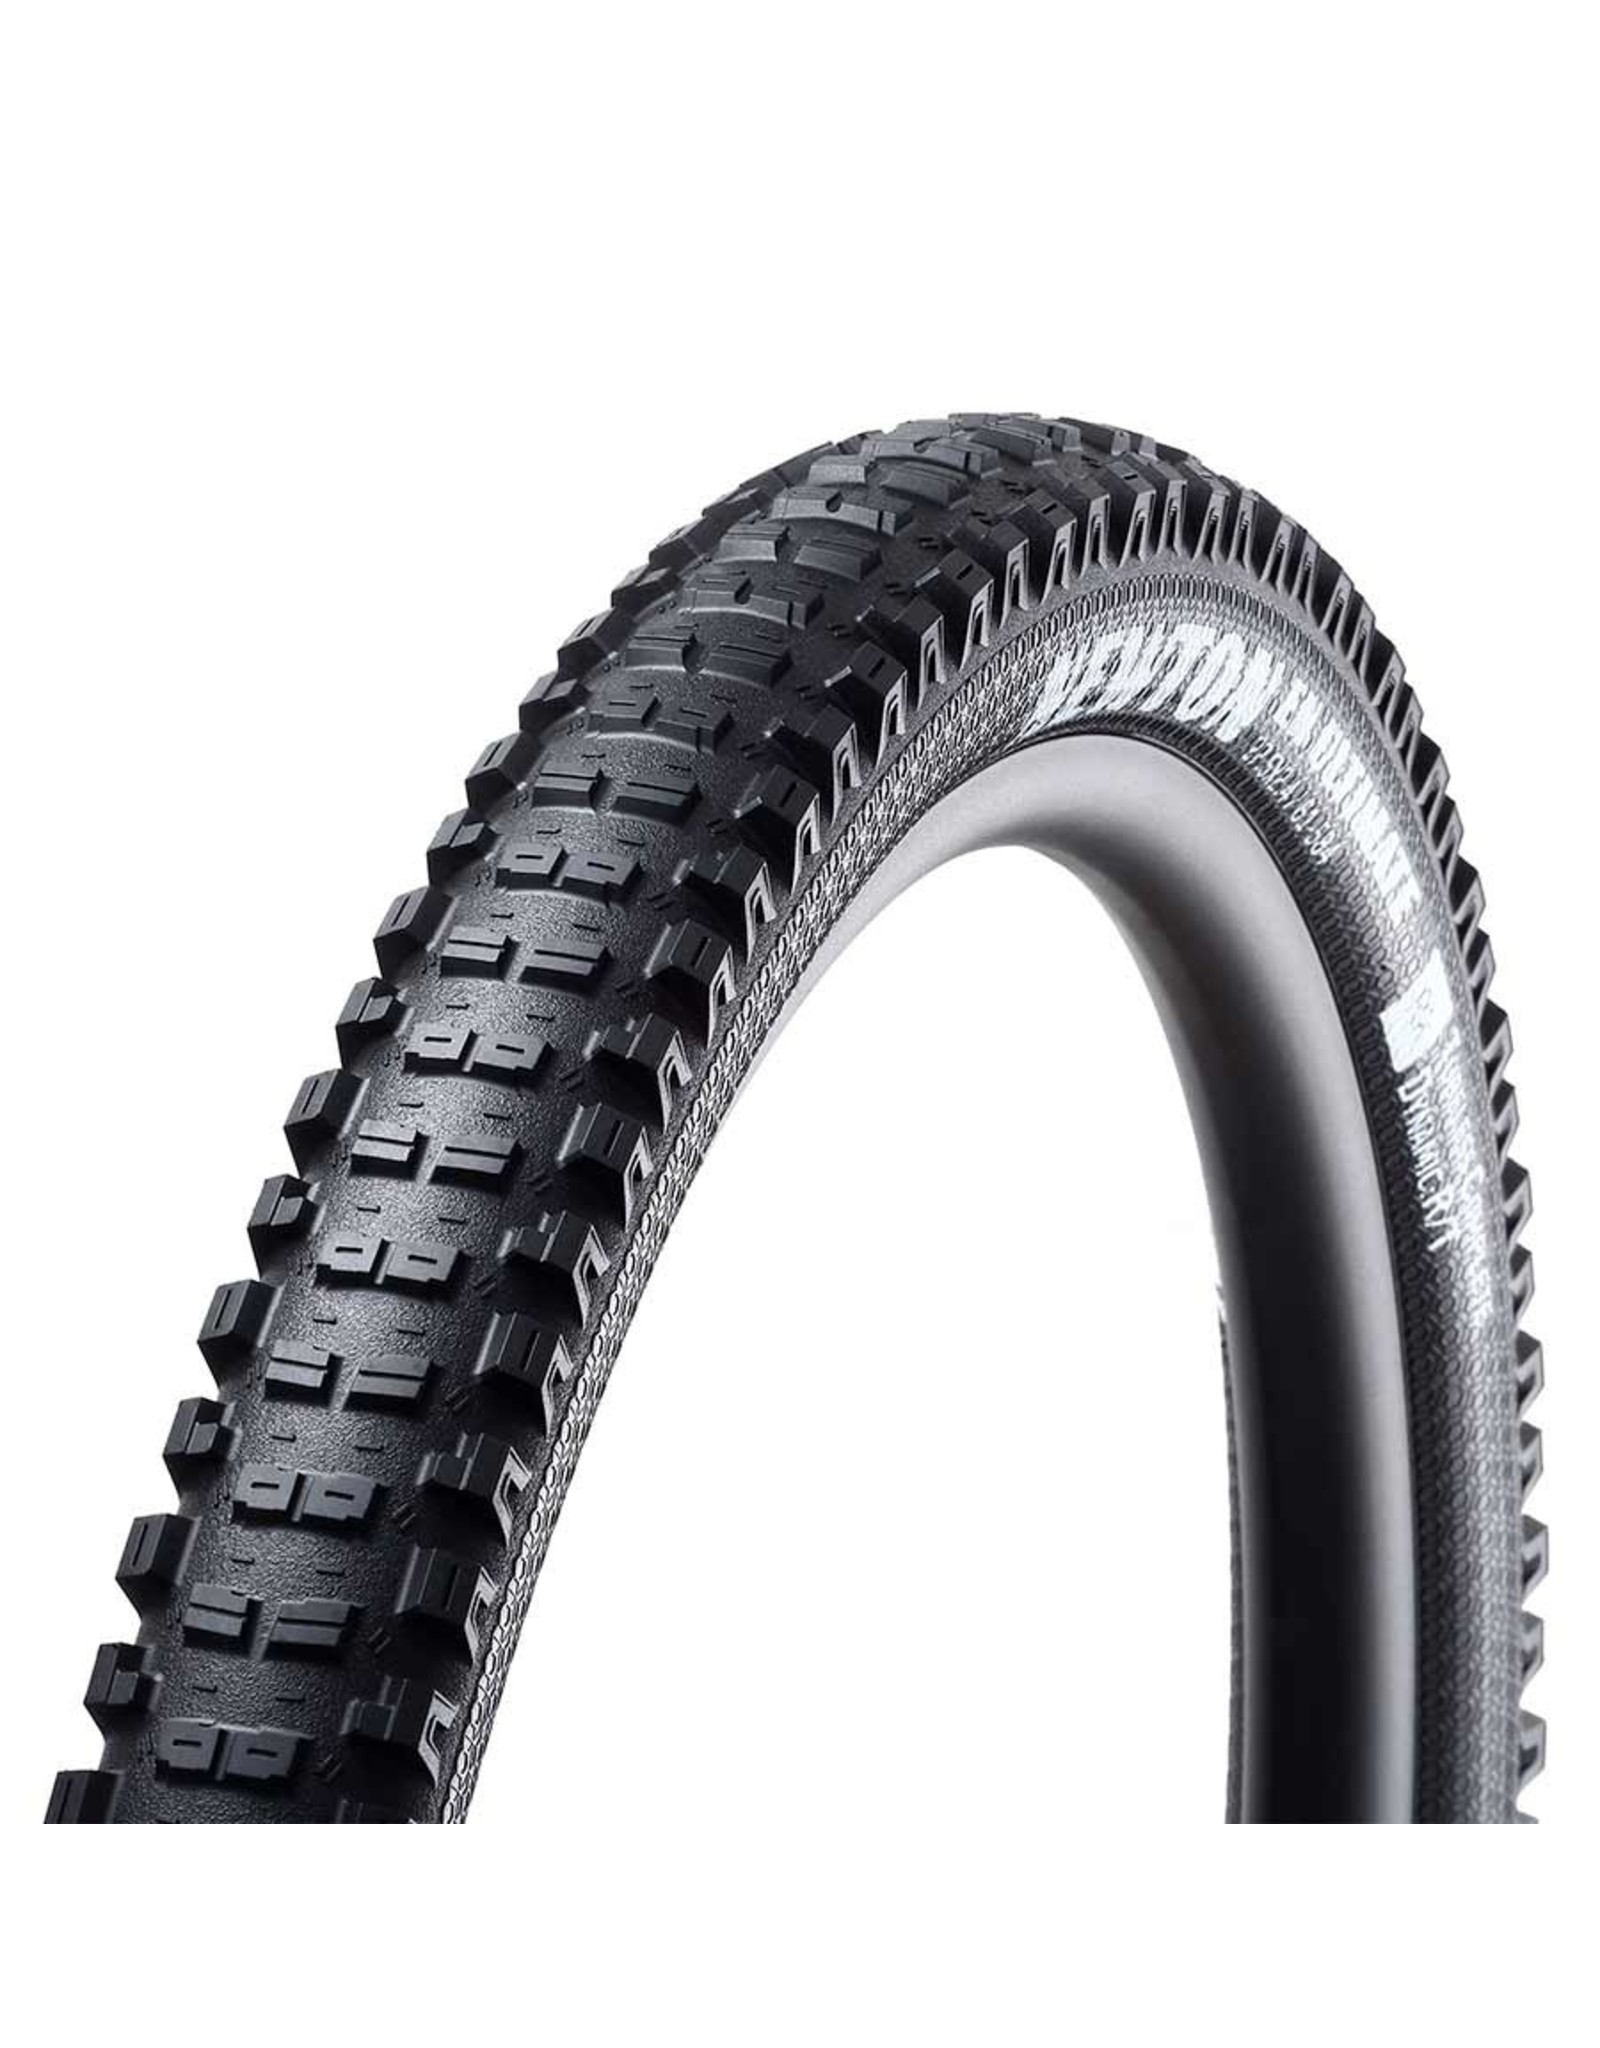 Goodyear Goodyear, Newton, Tire, 29''x2.60, Folding, Tubeless Ready, Dynamic:RS/T, DH Ultimate, 240TPI, Black